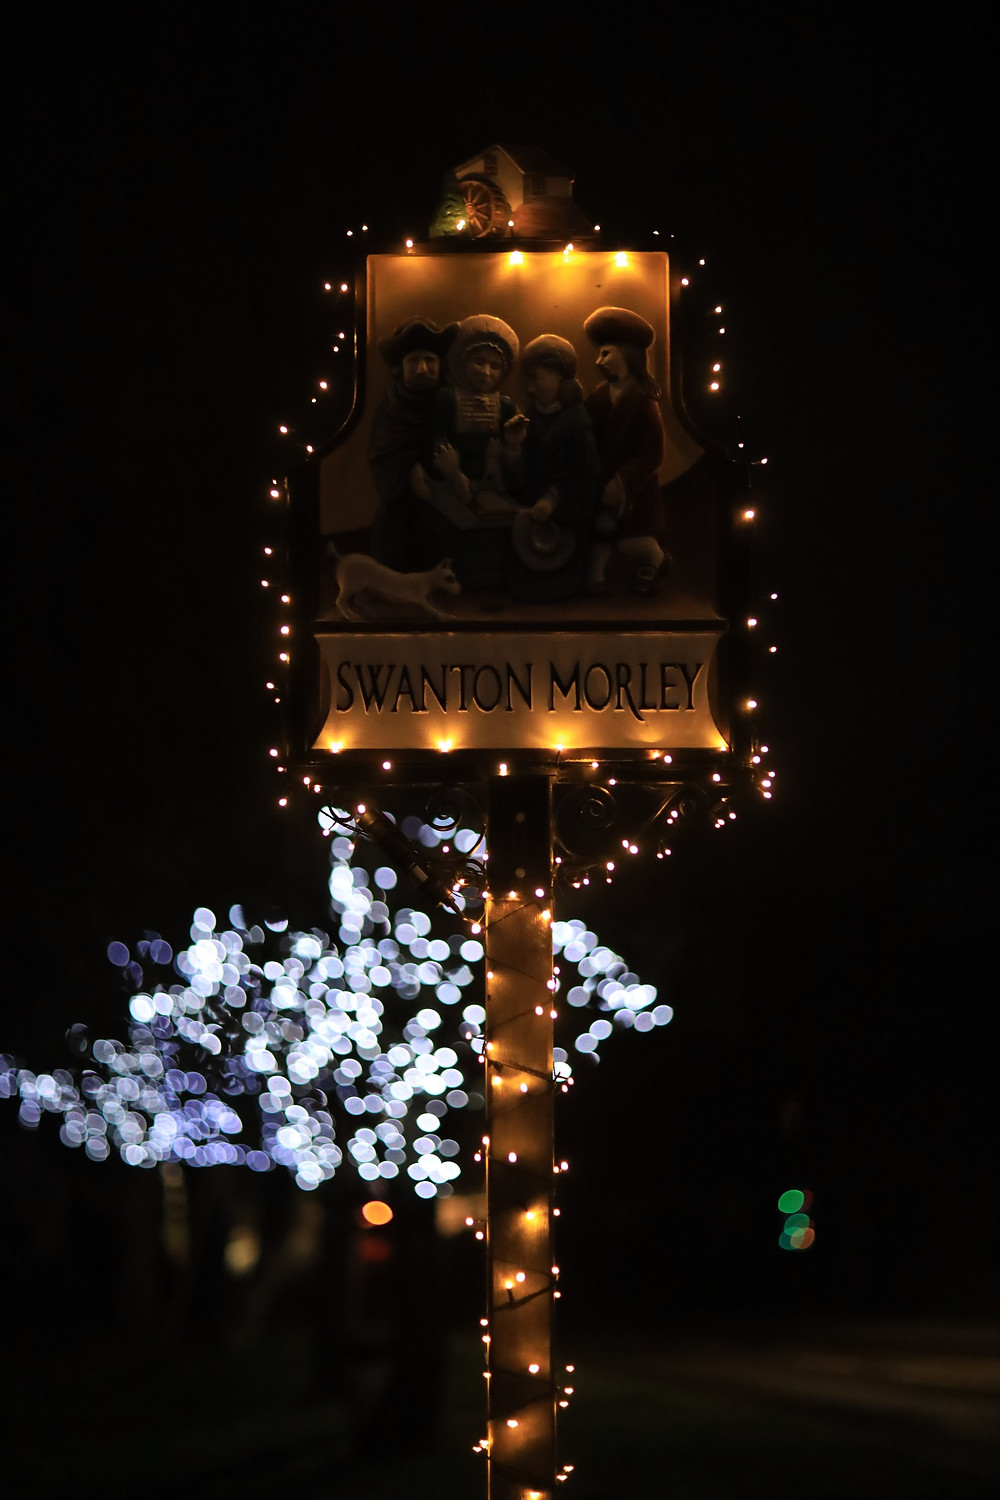 Swanton Morley Village Sign lit with Christmas lights